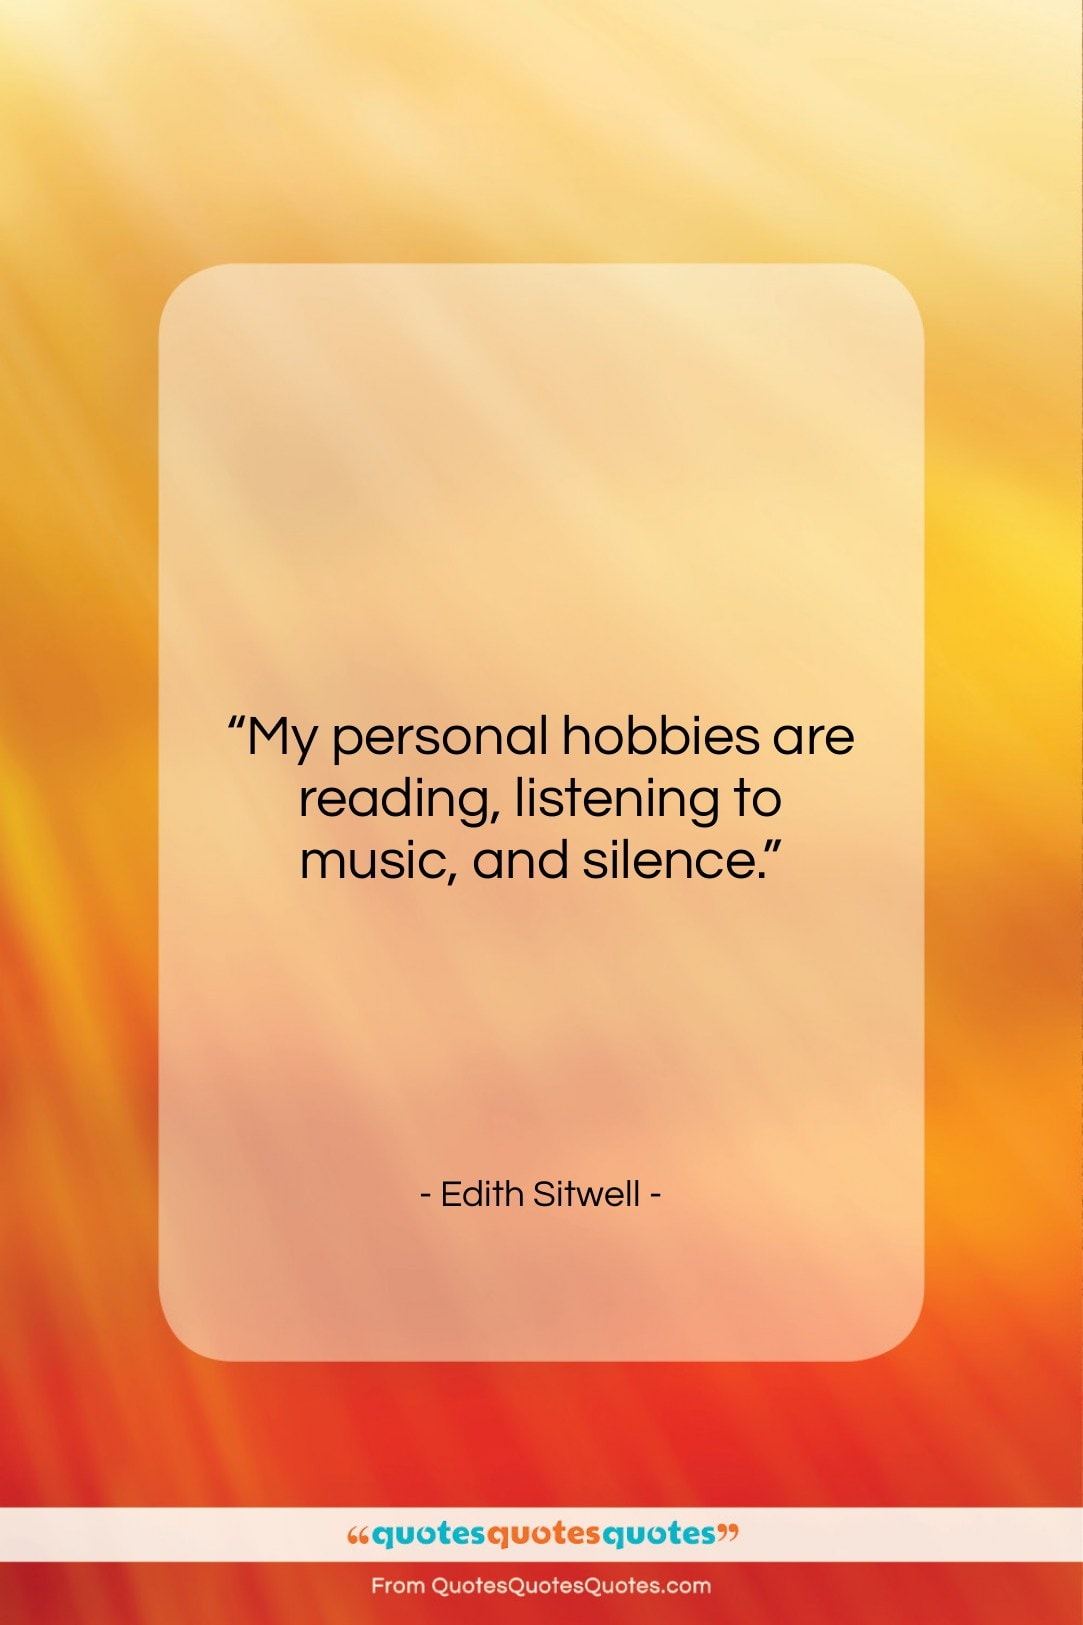 """Edith Sitwell quote: """"My personal hobbies are reading, listening to…""""- at QuotesQuotesQuotes.com"""